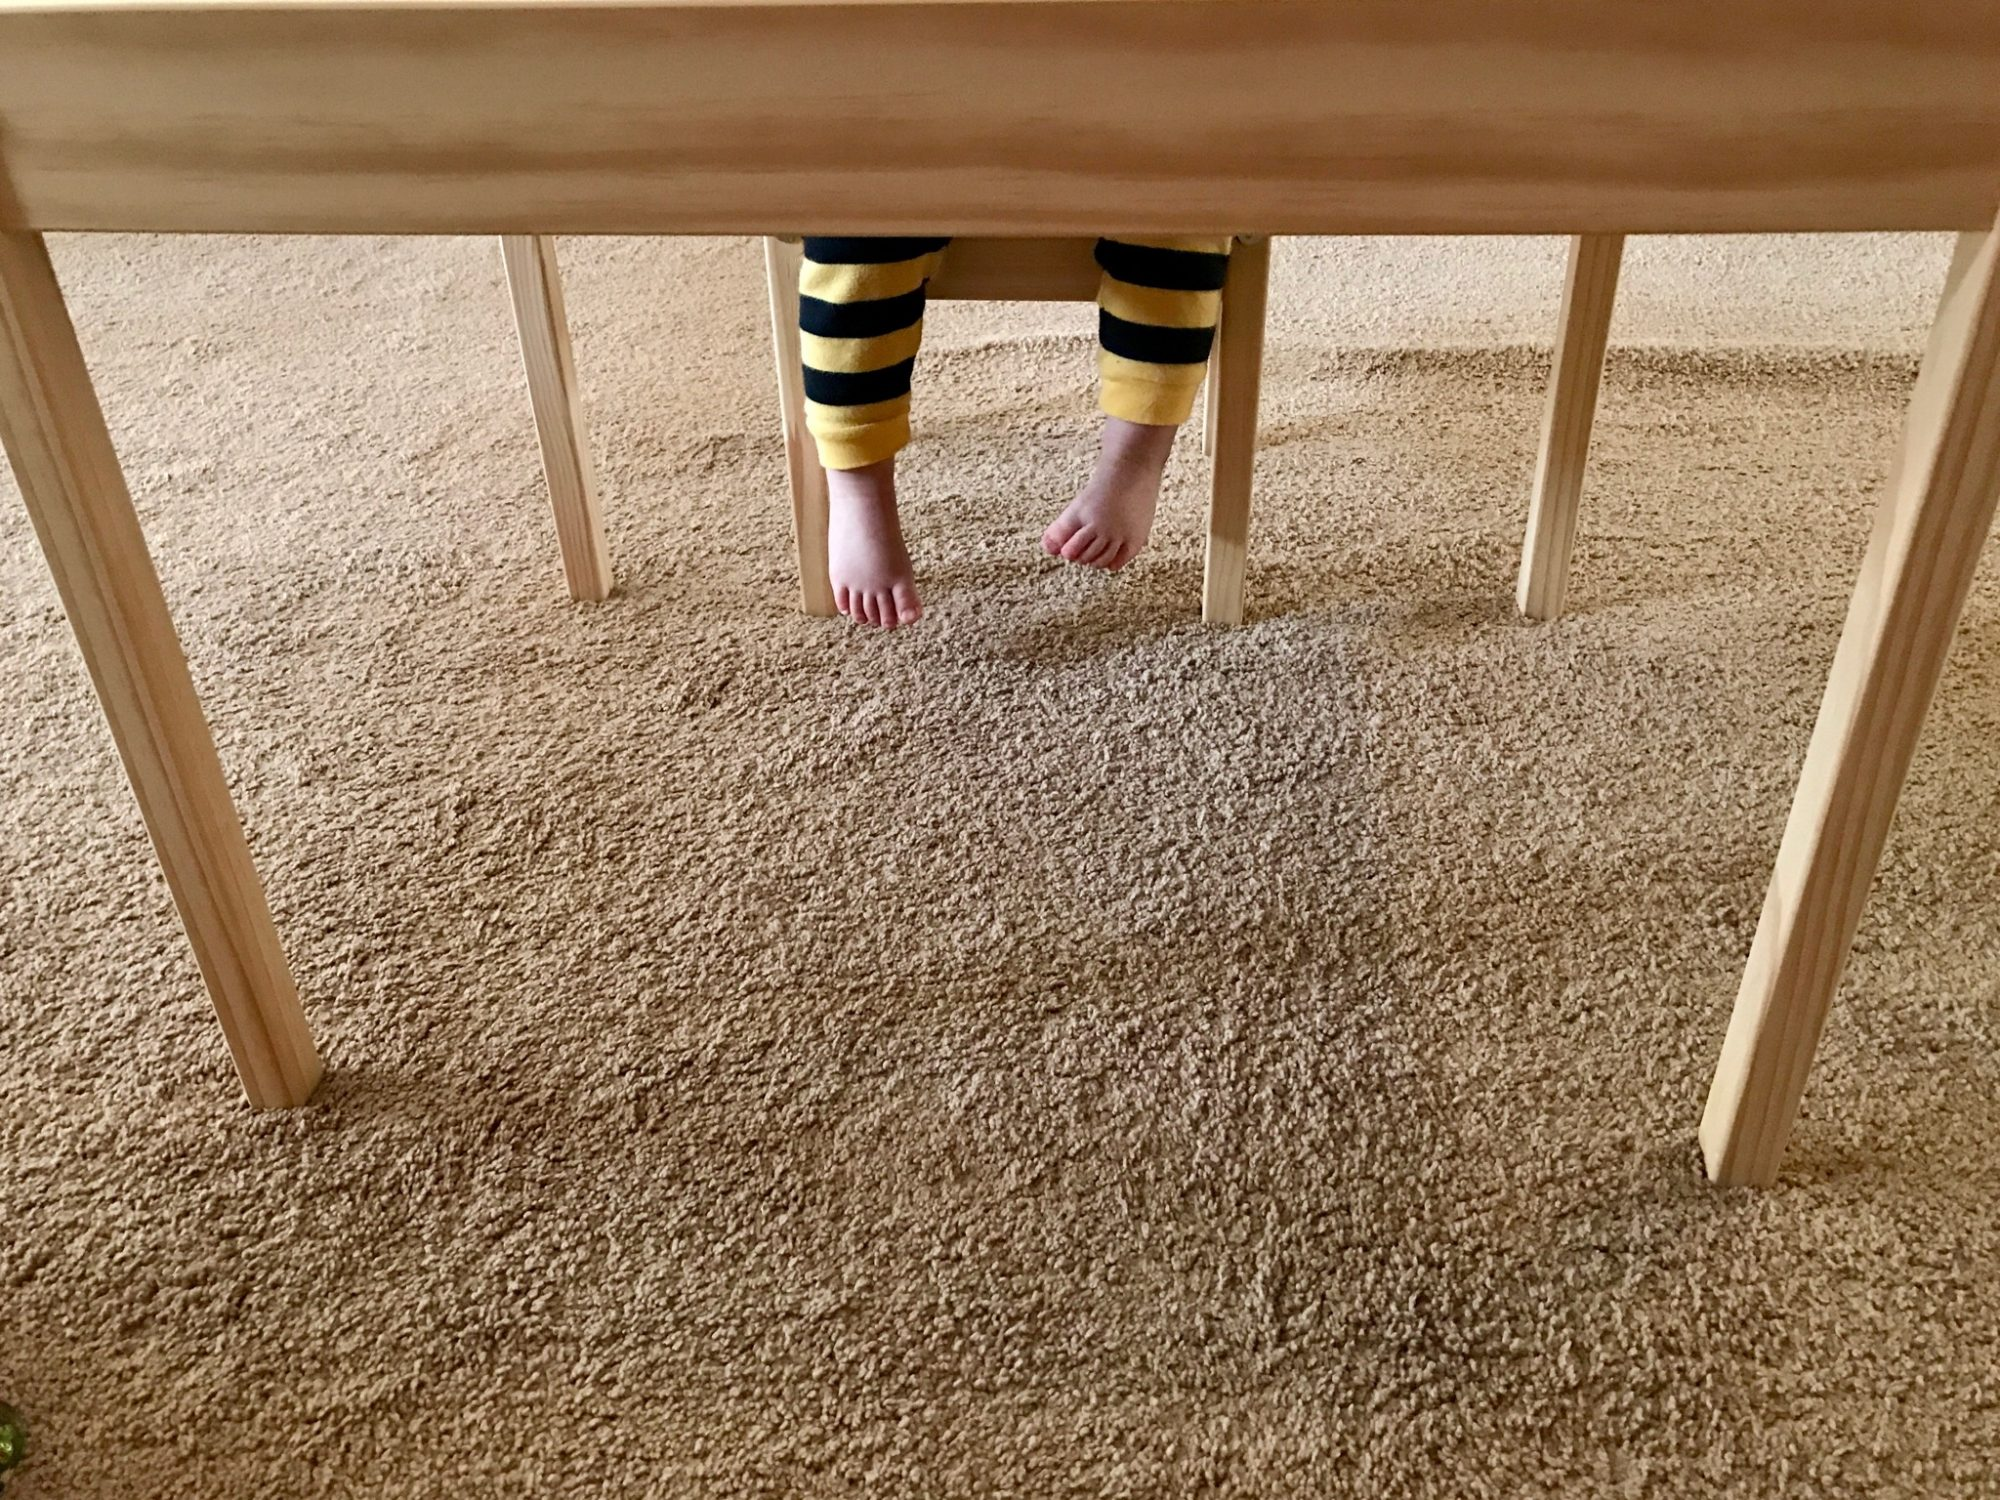 Little boy's feet dangling over carpet